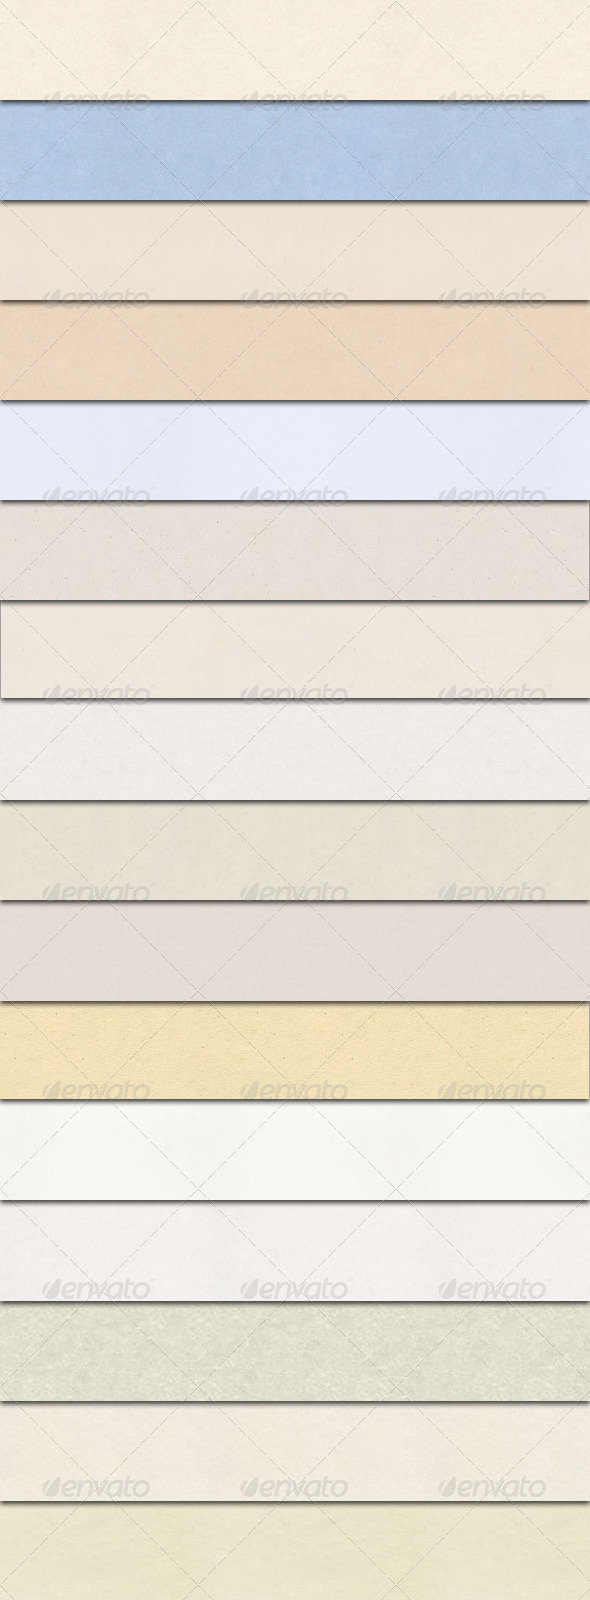 GraphicRiver 16 Seamless and Tileable Writing Paper Patterns 1934110